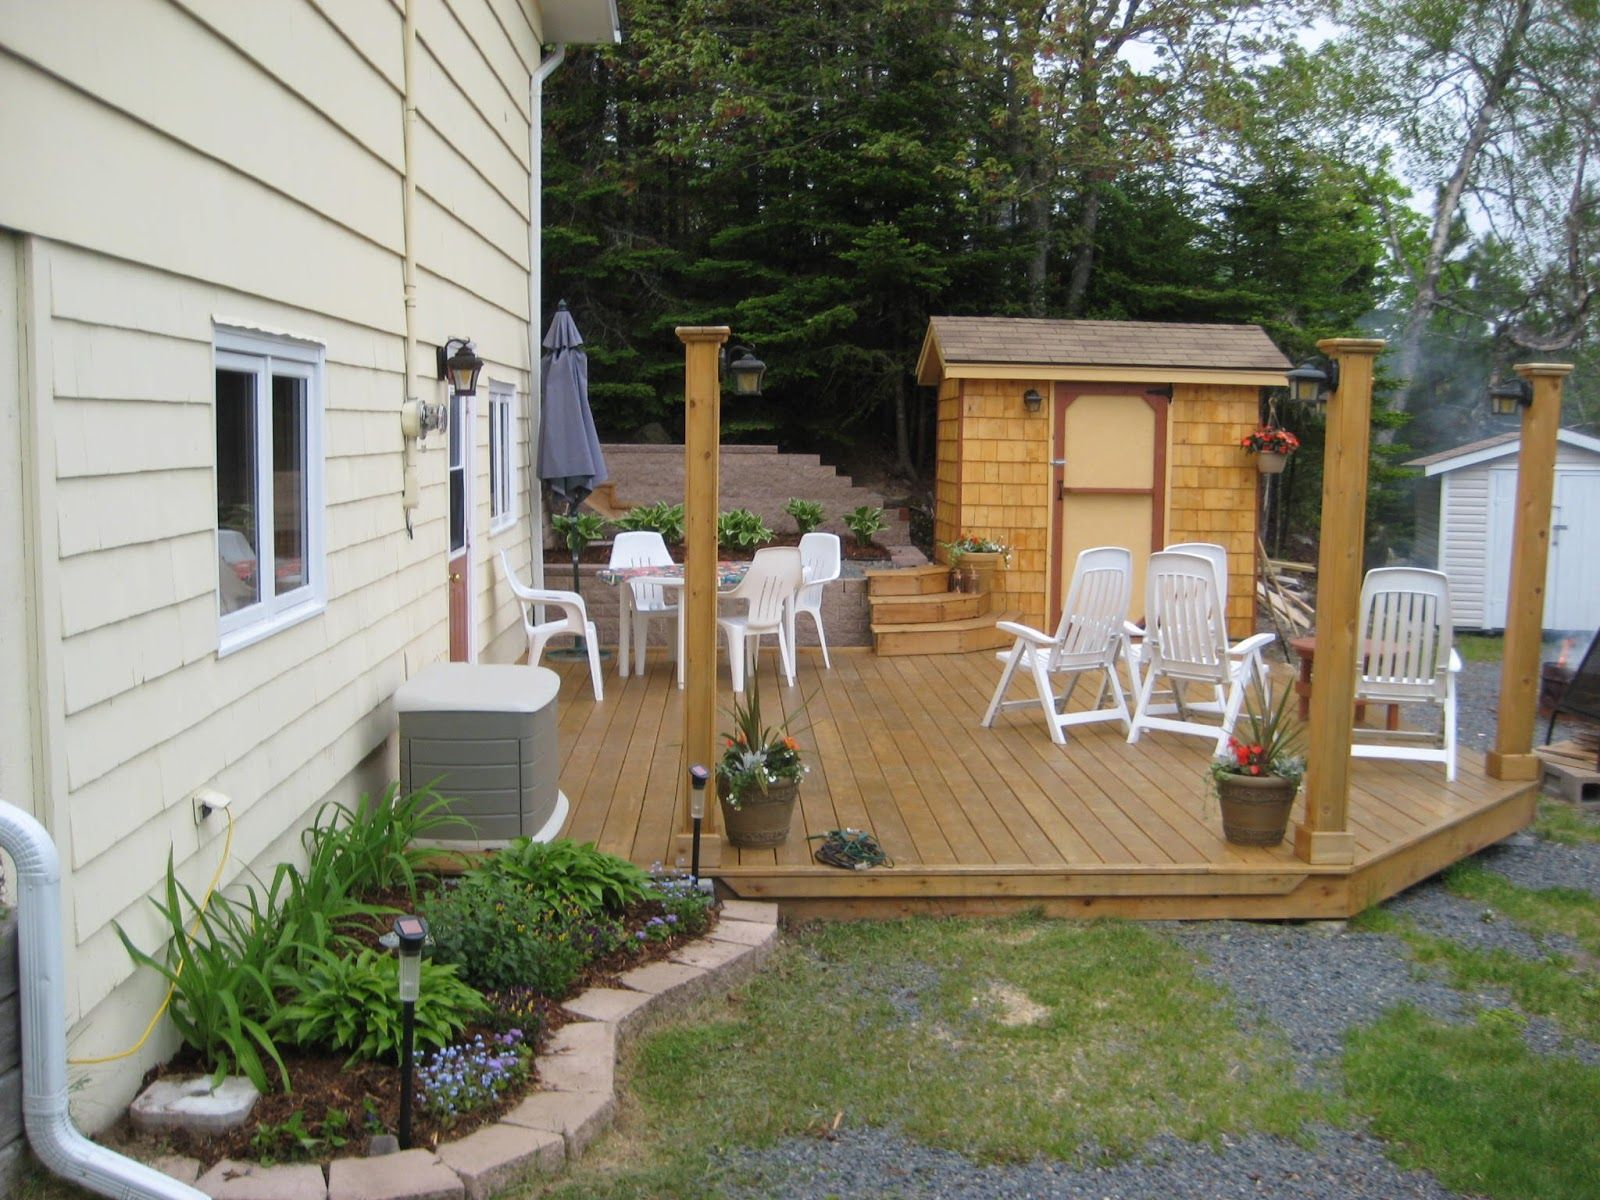 garden shed on deck pictures - Google Search   deck   Pinterest ...